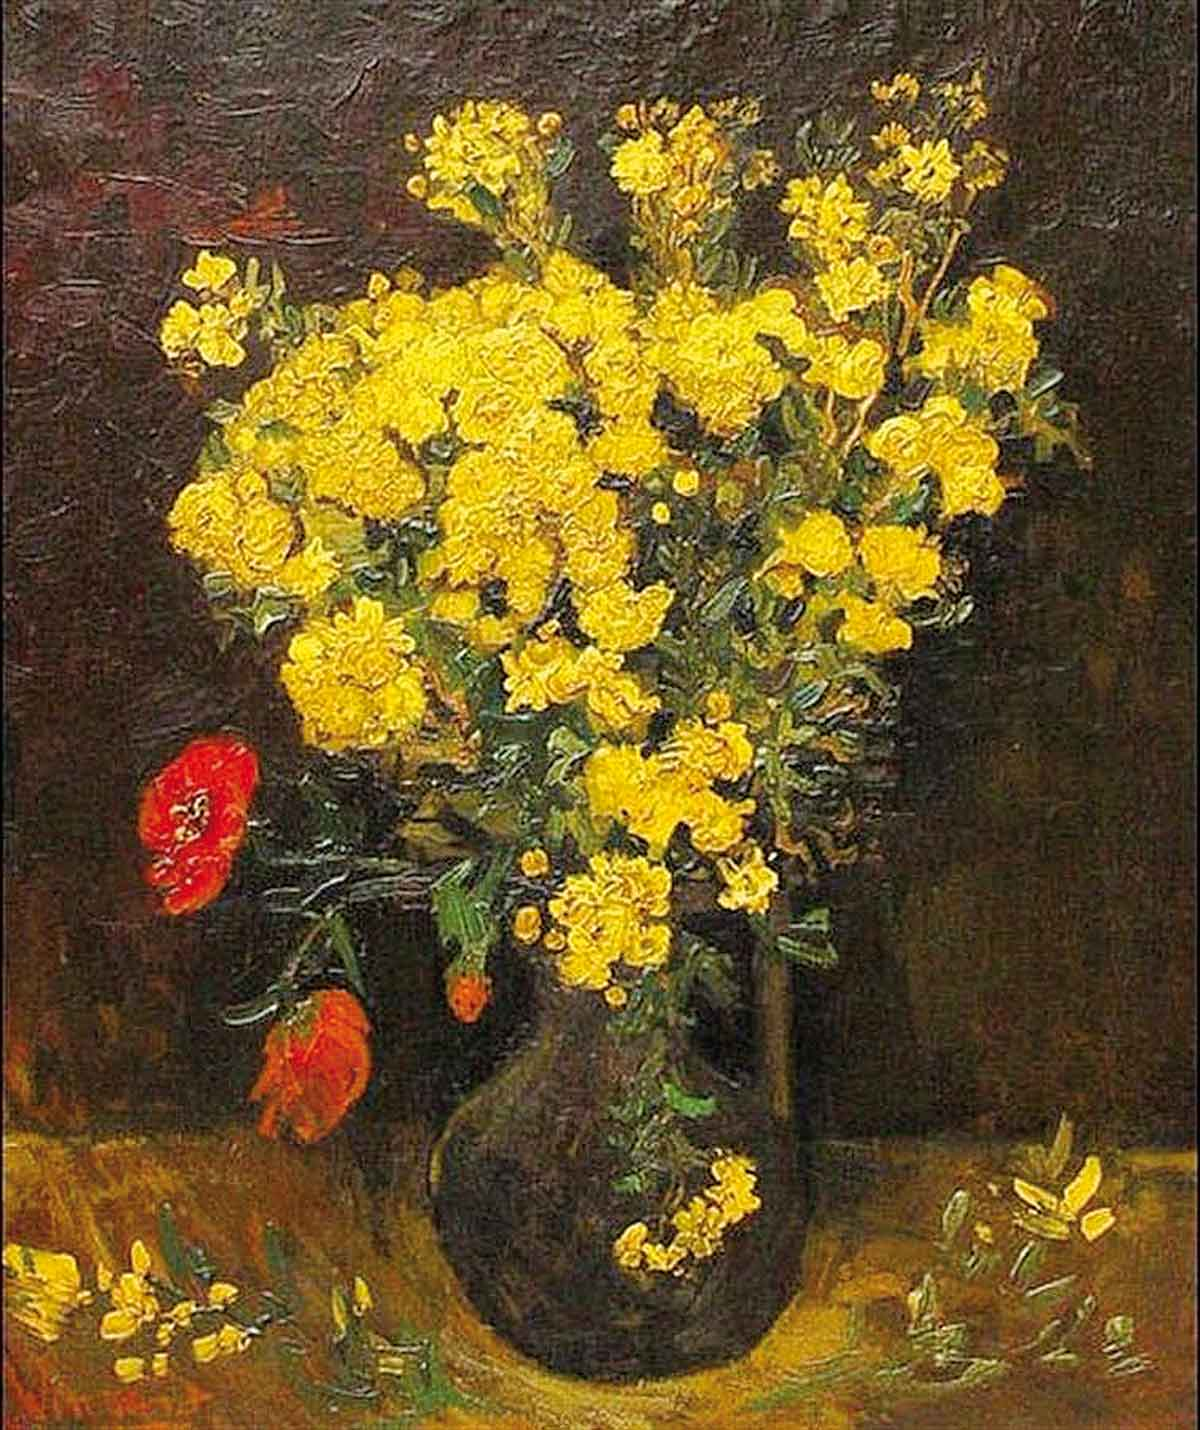 Stolen painting by Van Gogh: Poppy Flowers (1887)